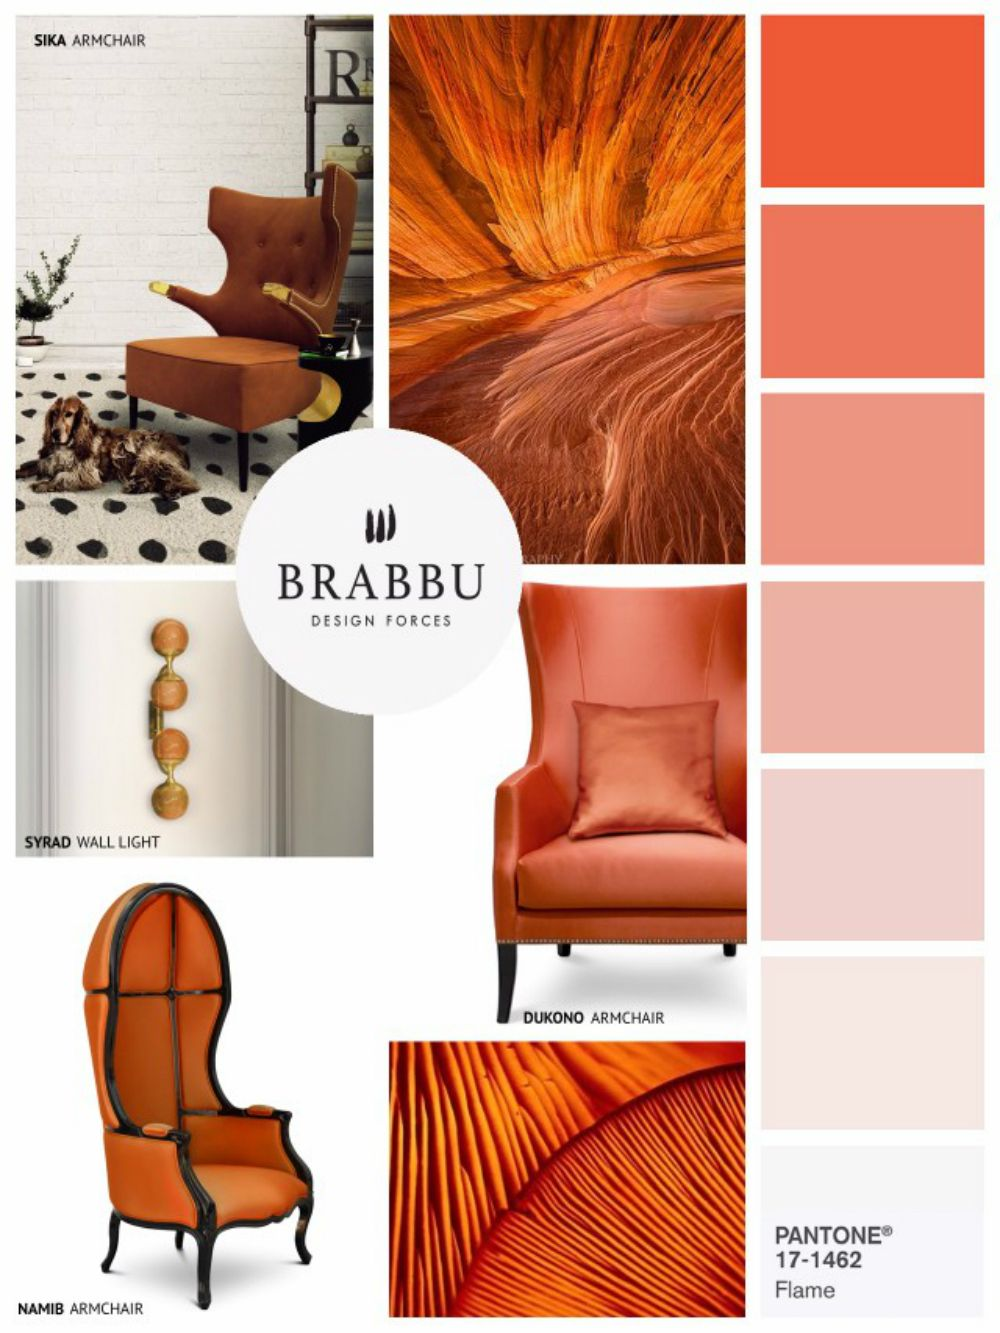 Home decor color trends for spring 2017 according to pantone another color trend taking over the market next year is this stunning flame orange color nvjuhfo Choice Image